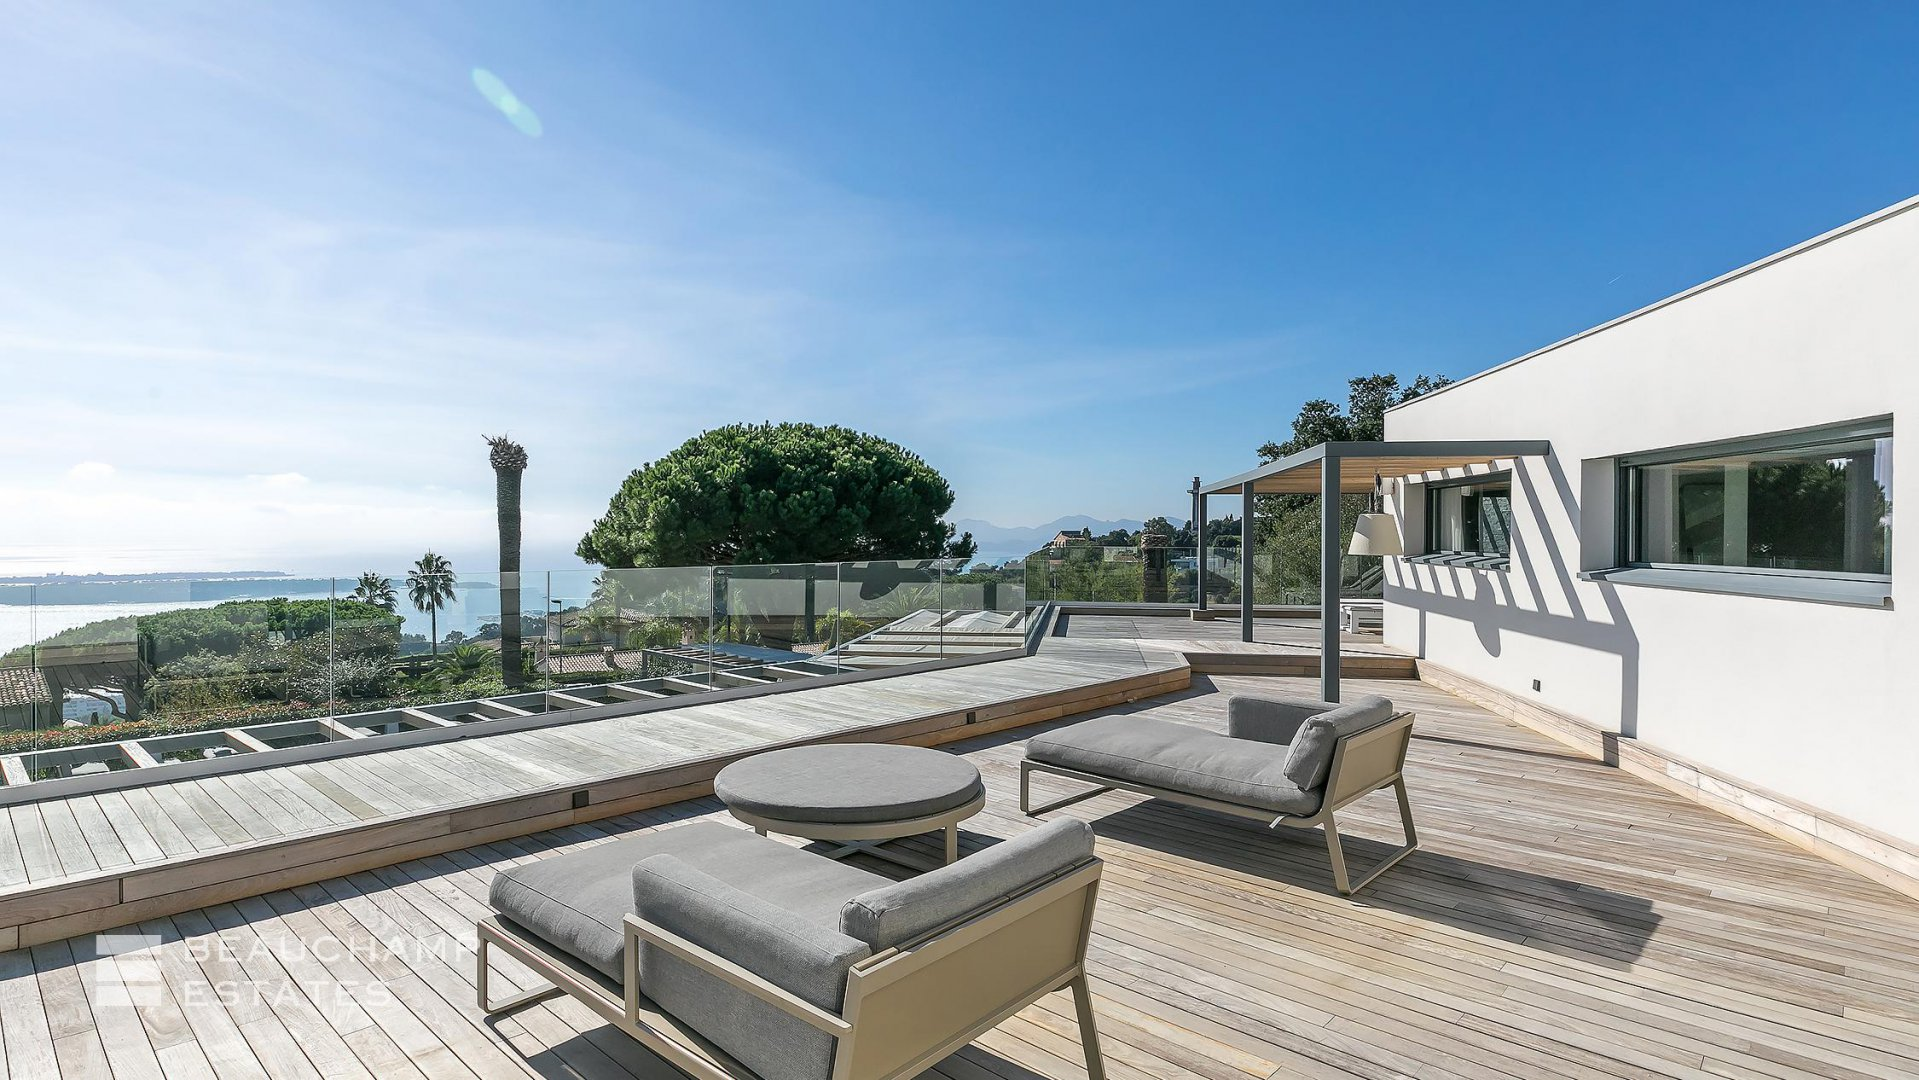 Luxurious 5 Bedroom Villa in Cannes with panoramic sea view